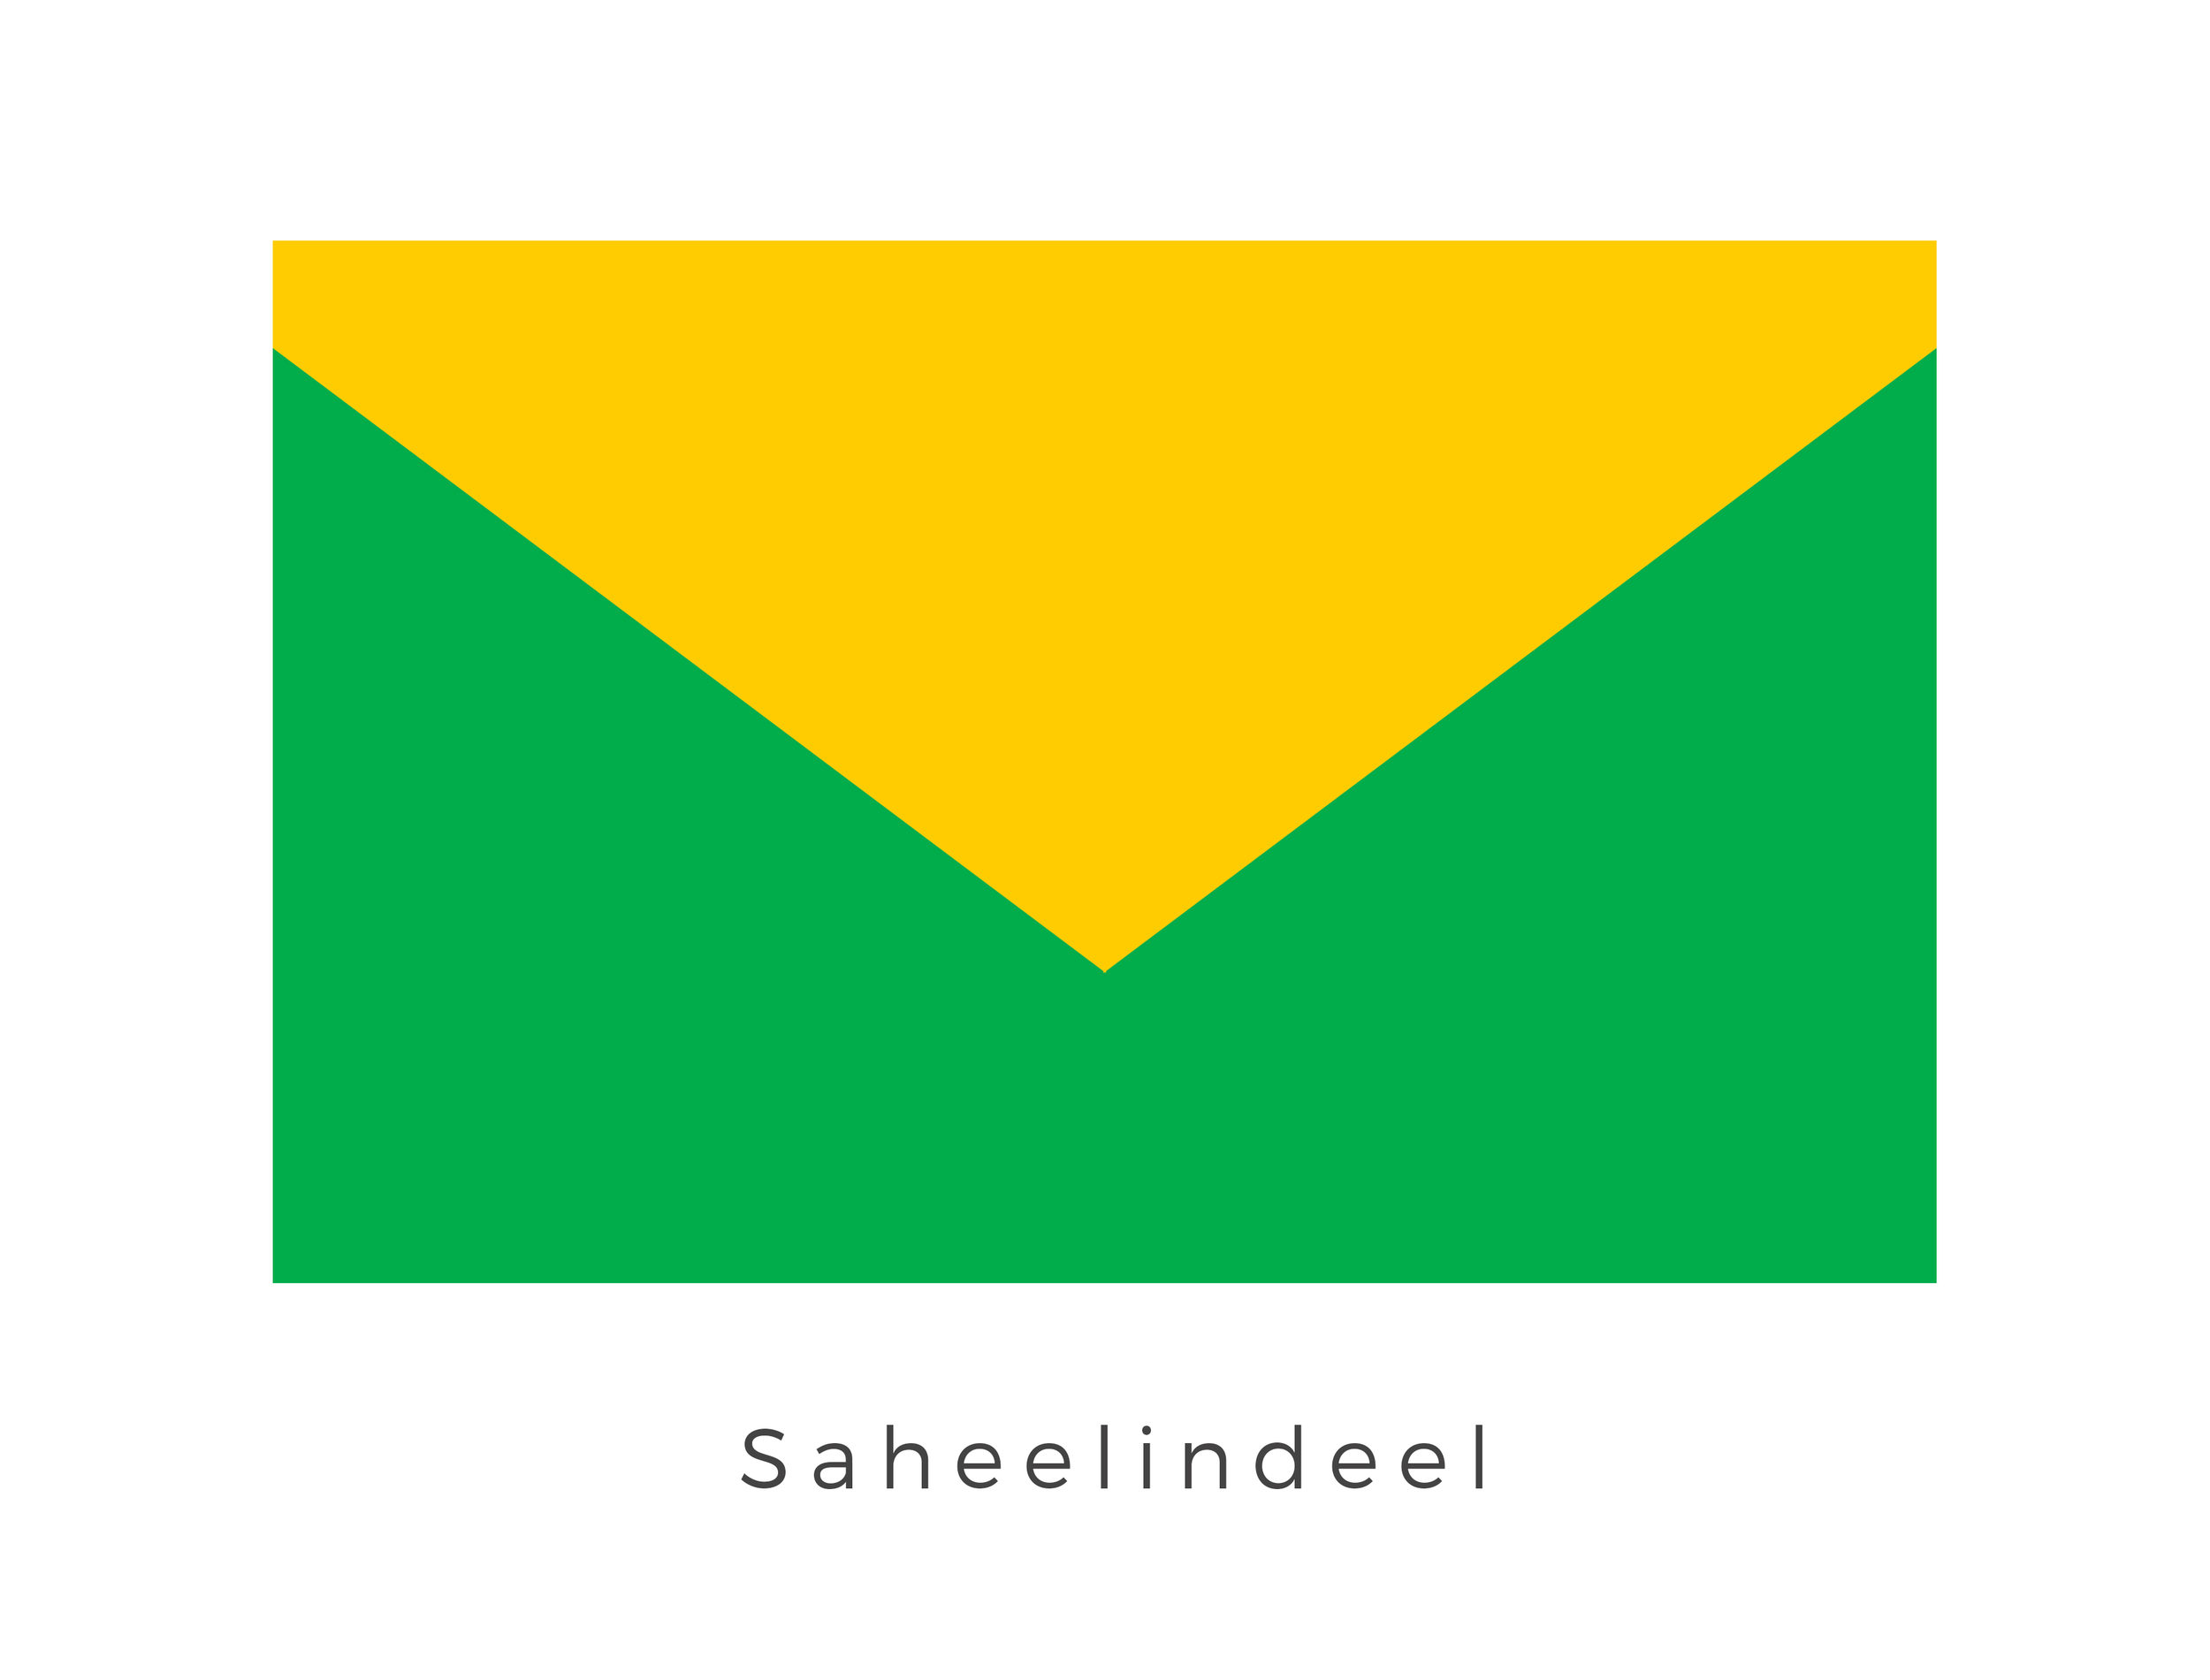 Saheelindeel  was an agricultural world that was located in the Tion Hegemony, within the Outer Rim of the galaxy. It was a backwater world inhabited by the Saheelindeeli, a species of intelligent, green-furred primates. The green hair of the native species and the triangular shape in which the deeply agricultural population cut their crops informed the simple graphic design of the flag.